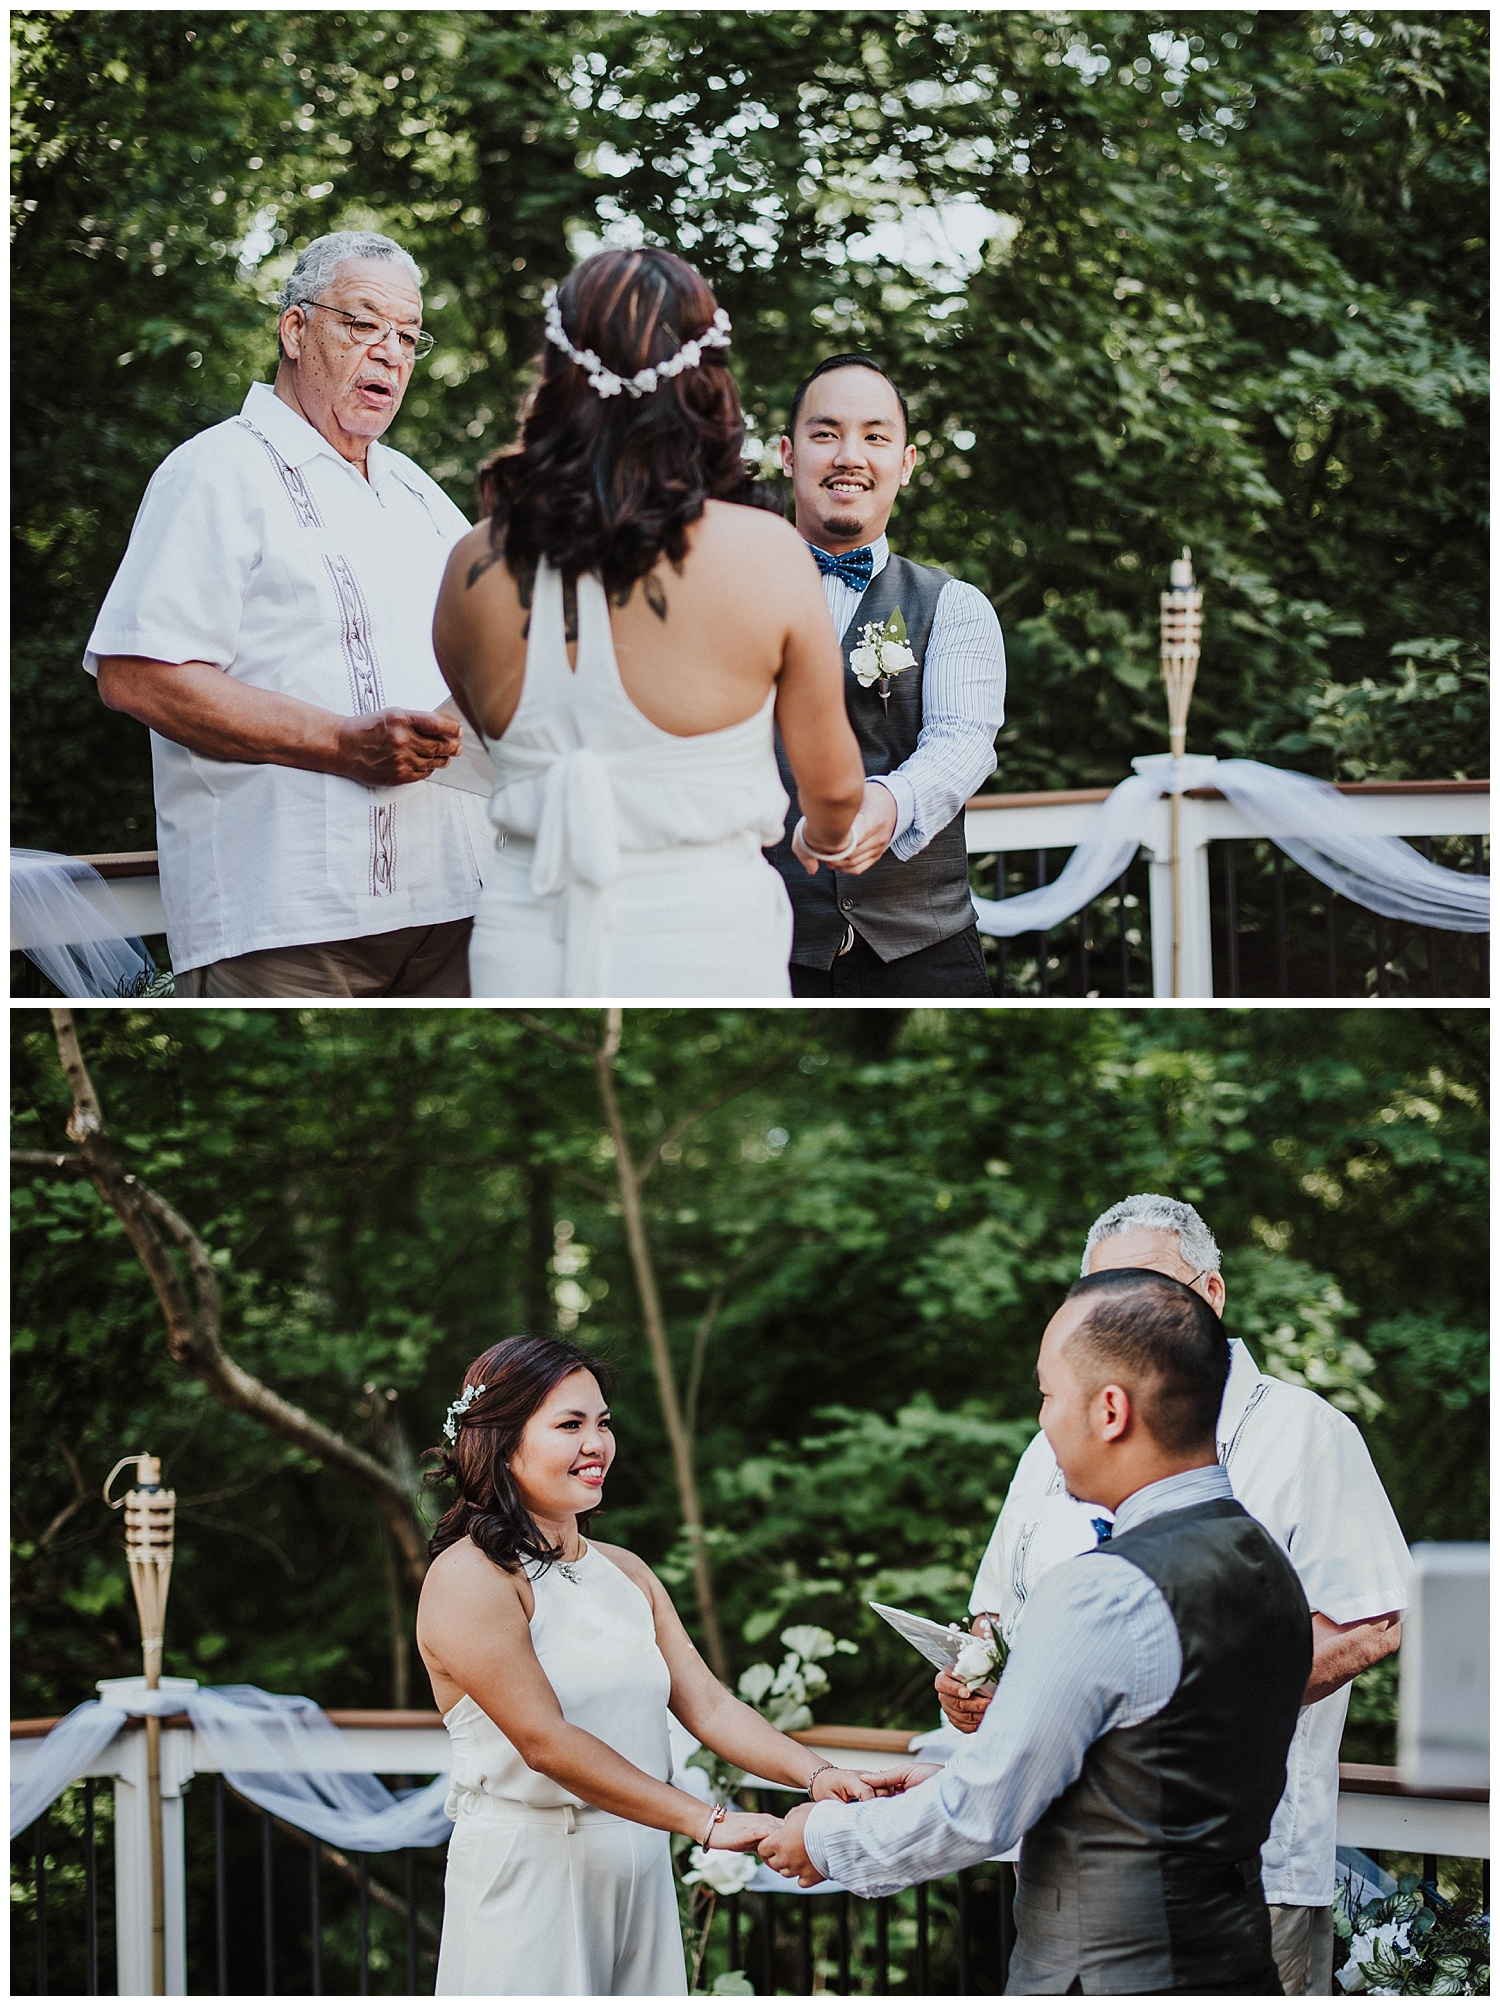 secular-marriage-union-outdoor-wedding-virginia.jpg